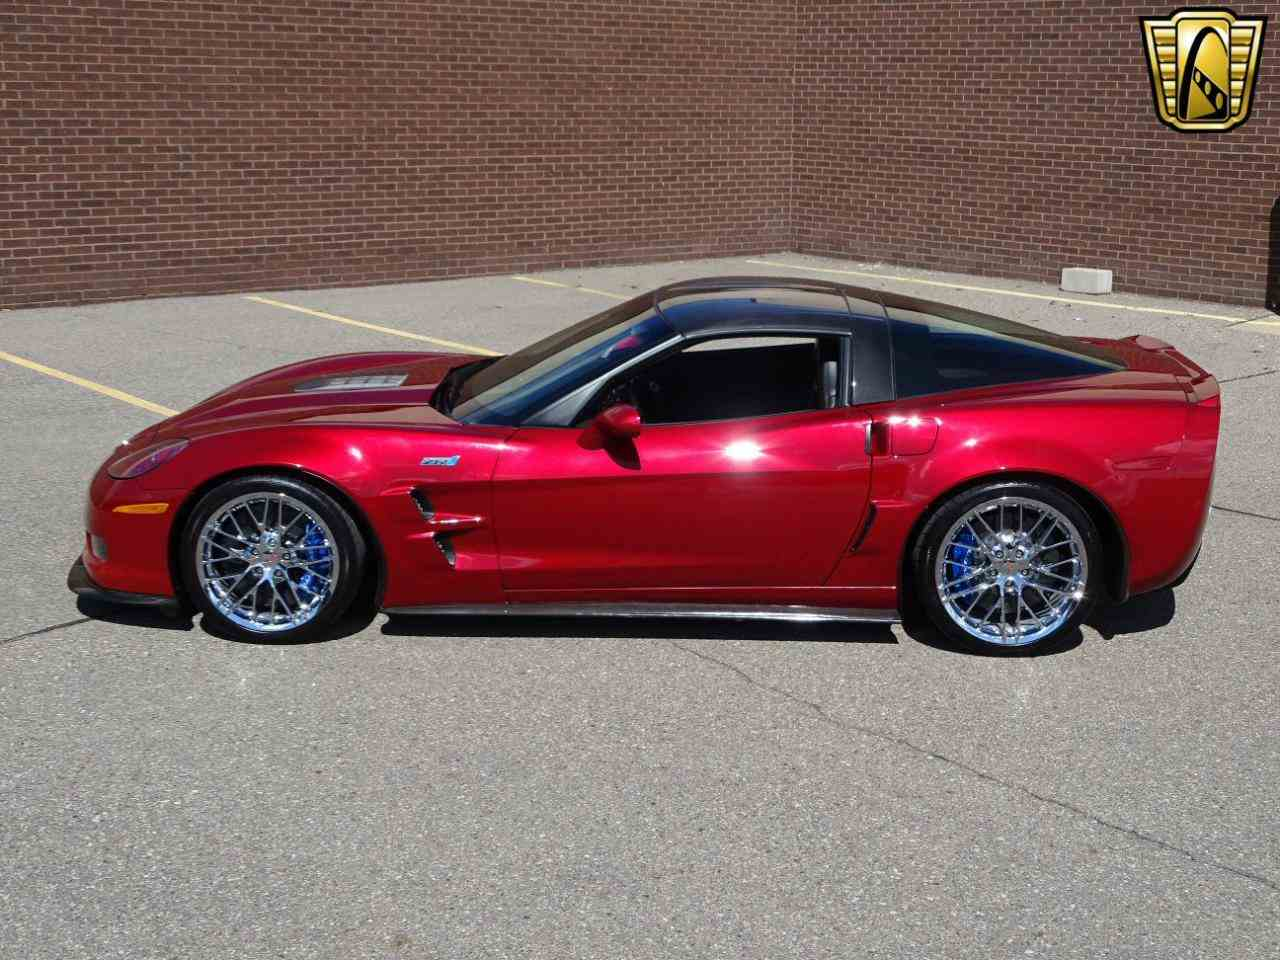 Large Picture of '10 Corvette located in Dearborn Michigan - $78,000.00 - L8QM